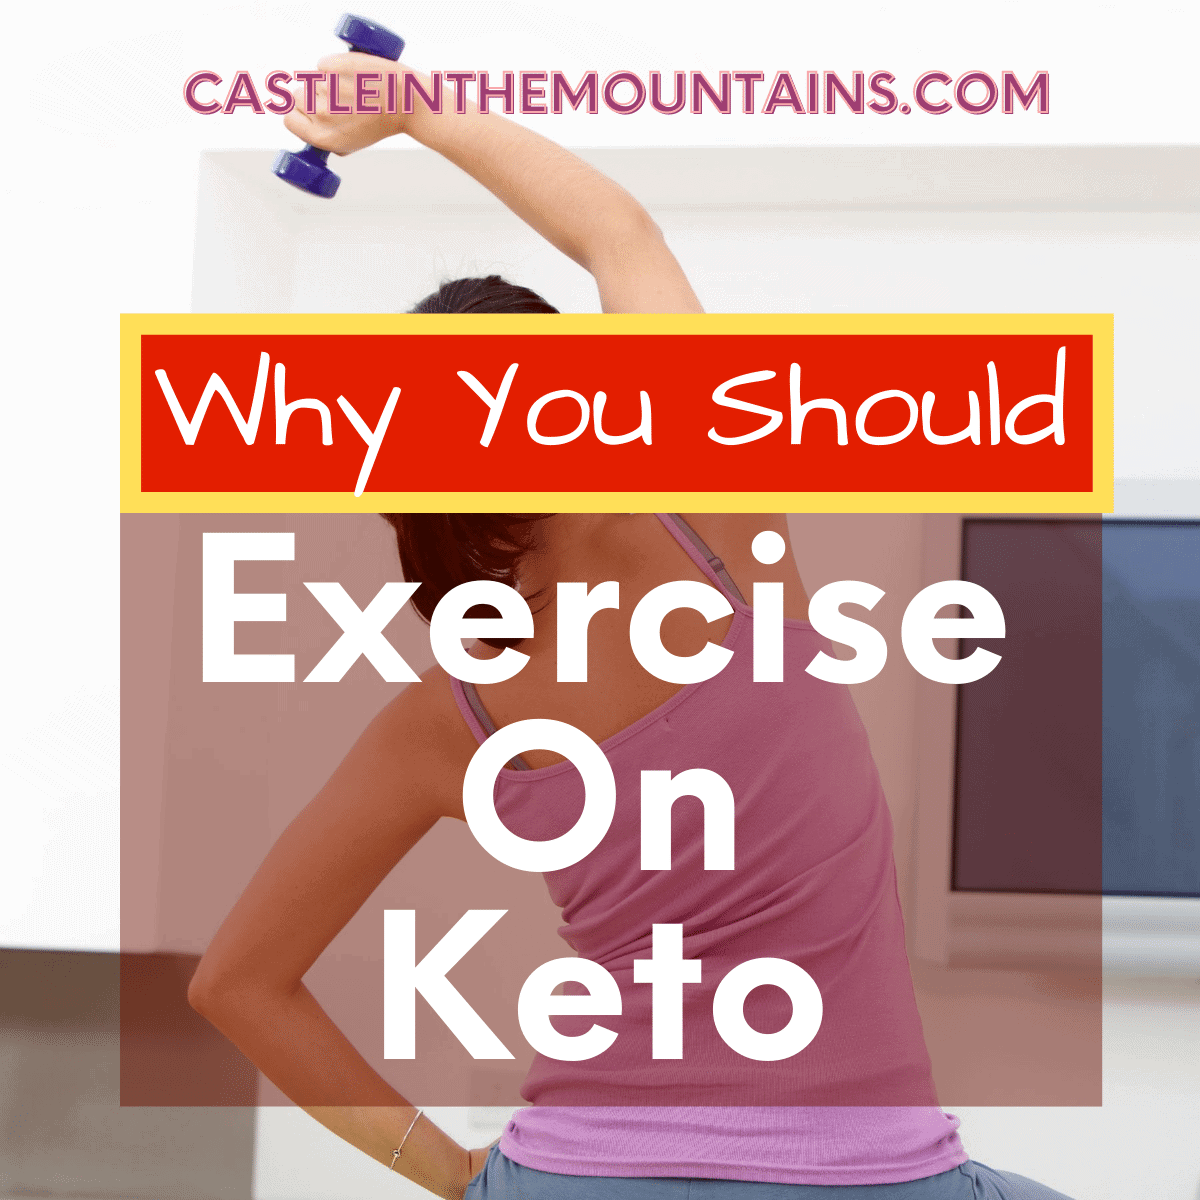 Why you should Exercise on Keto & how to do it